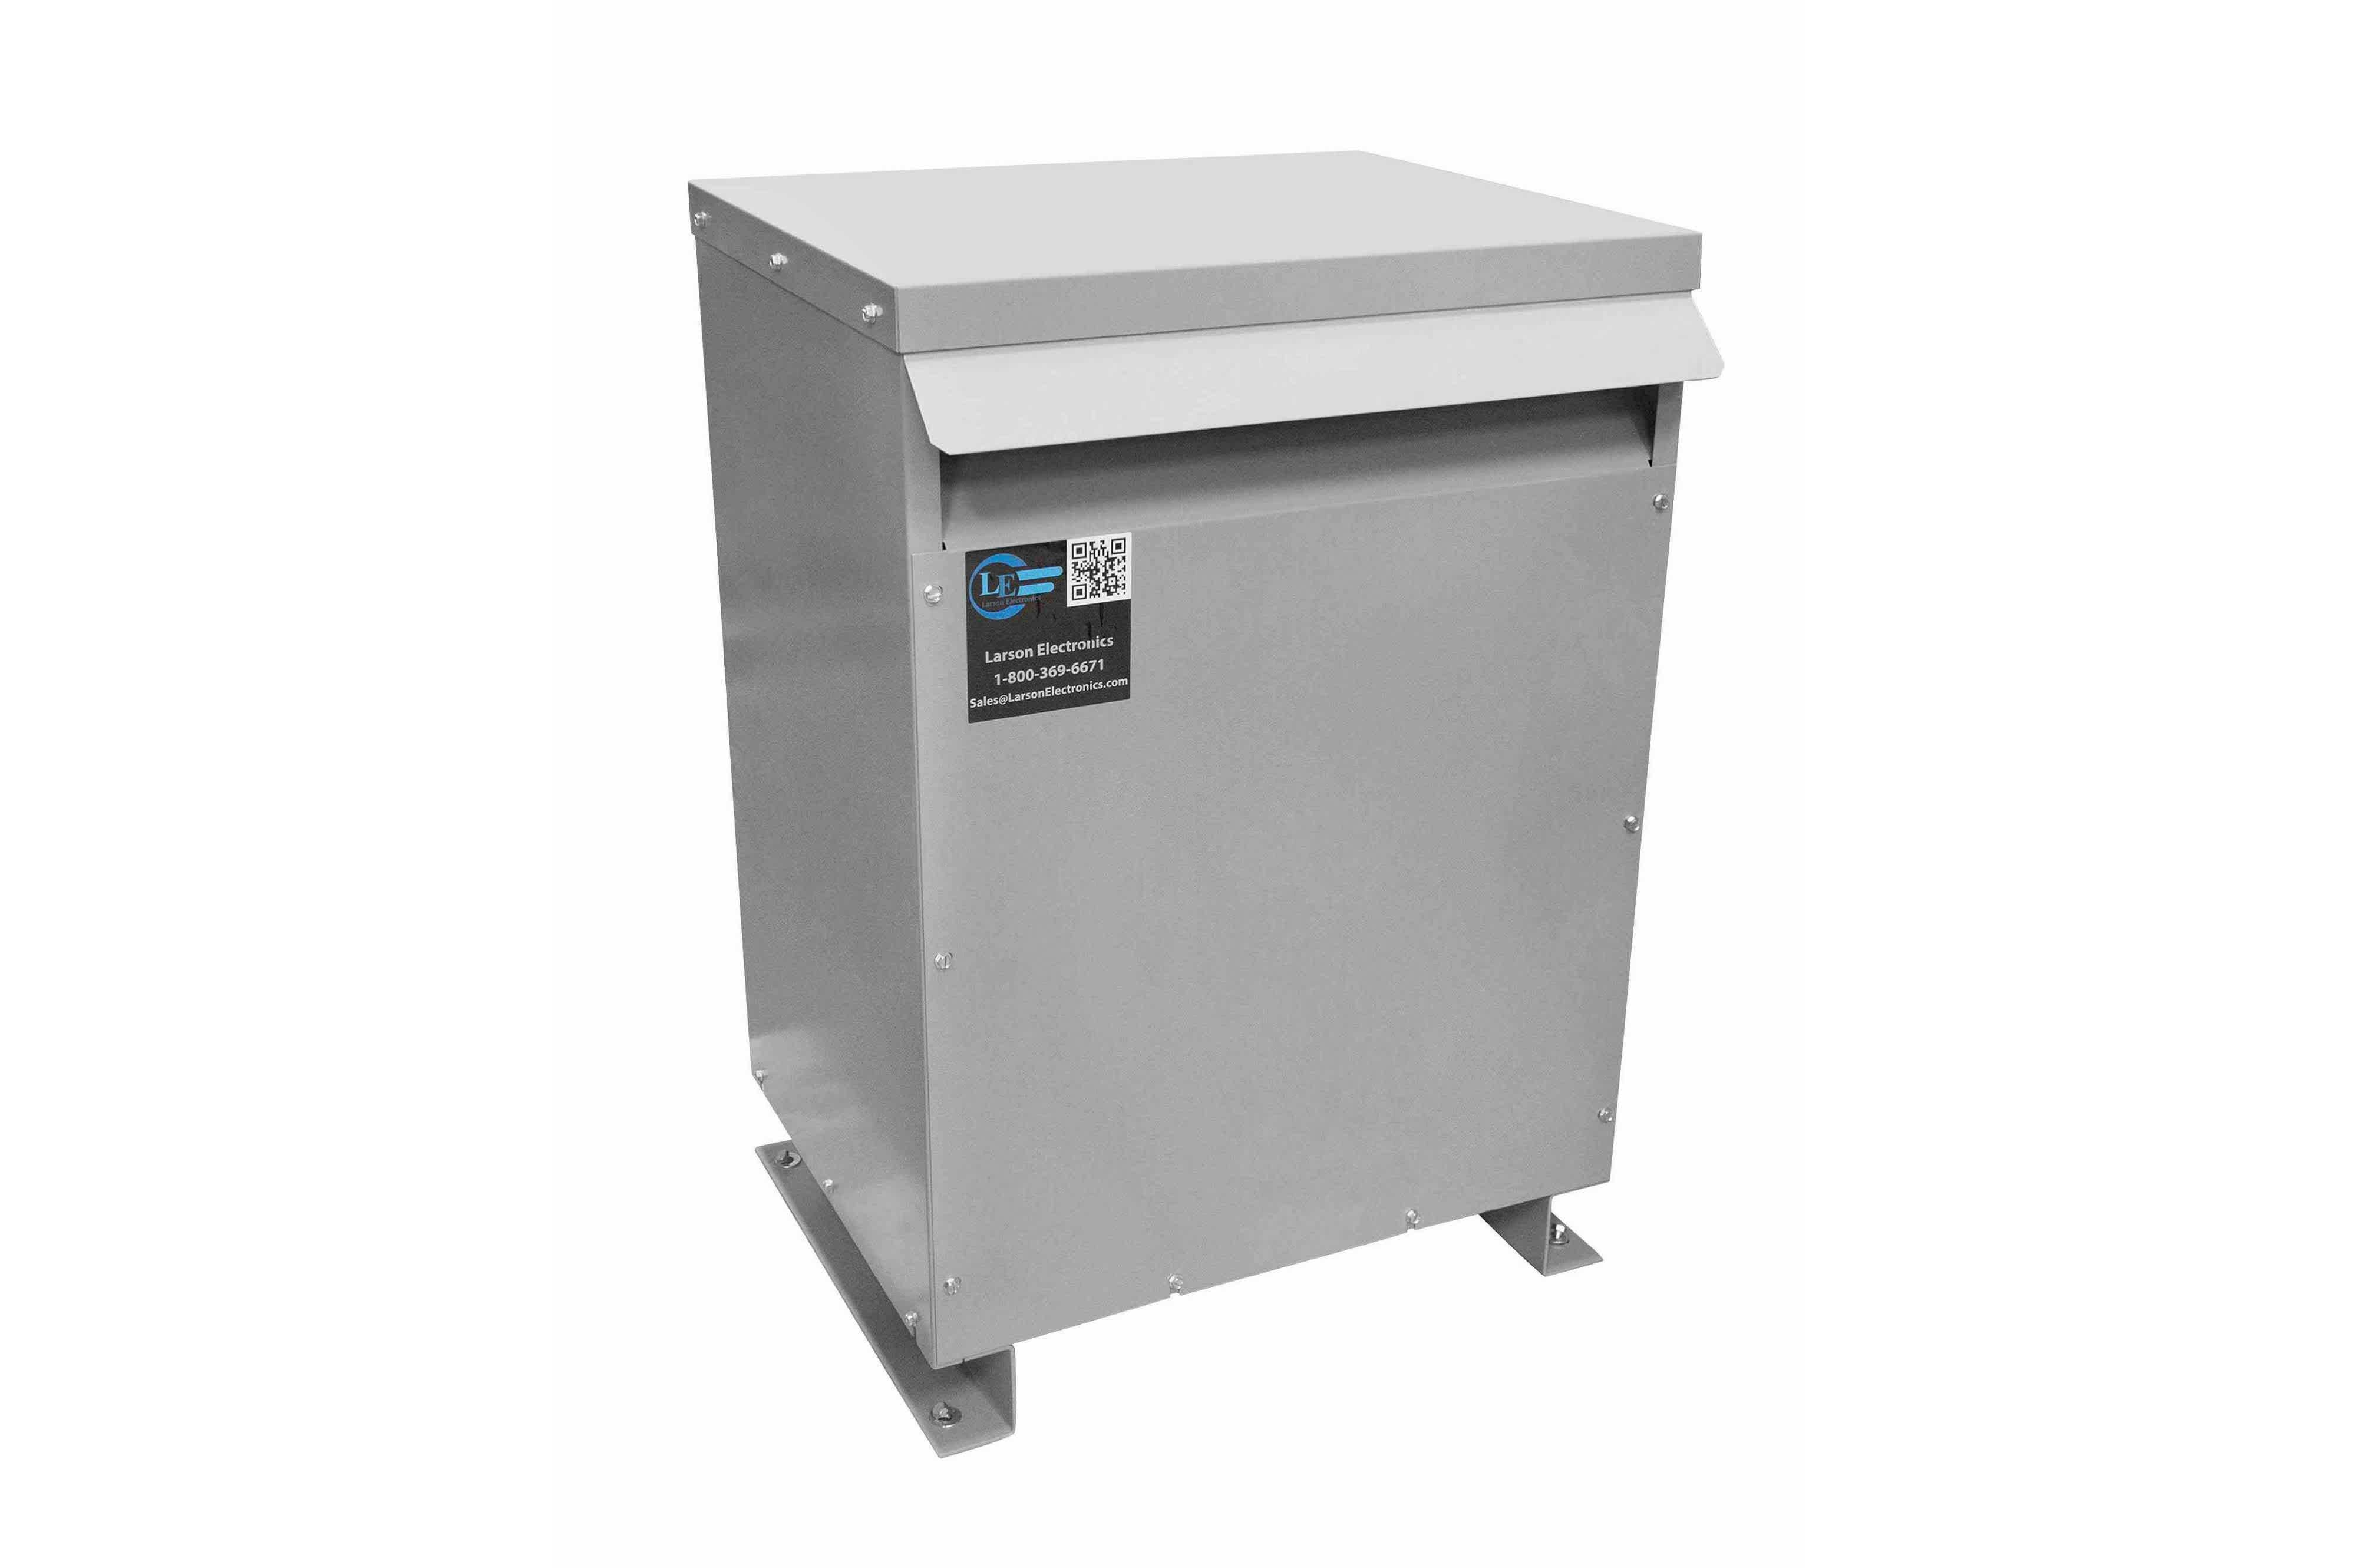 1000 kVA 3PH Isolation Transformer, 230V Wye Primary, 208V Delta Secondary, N3R, Ventilated, 60 Hz